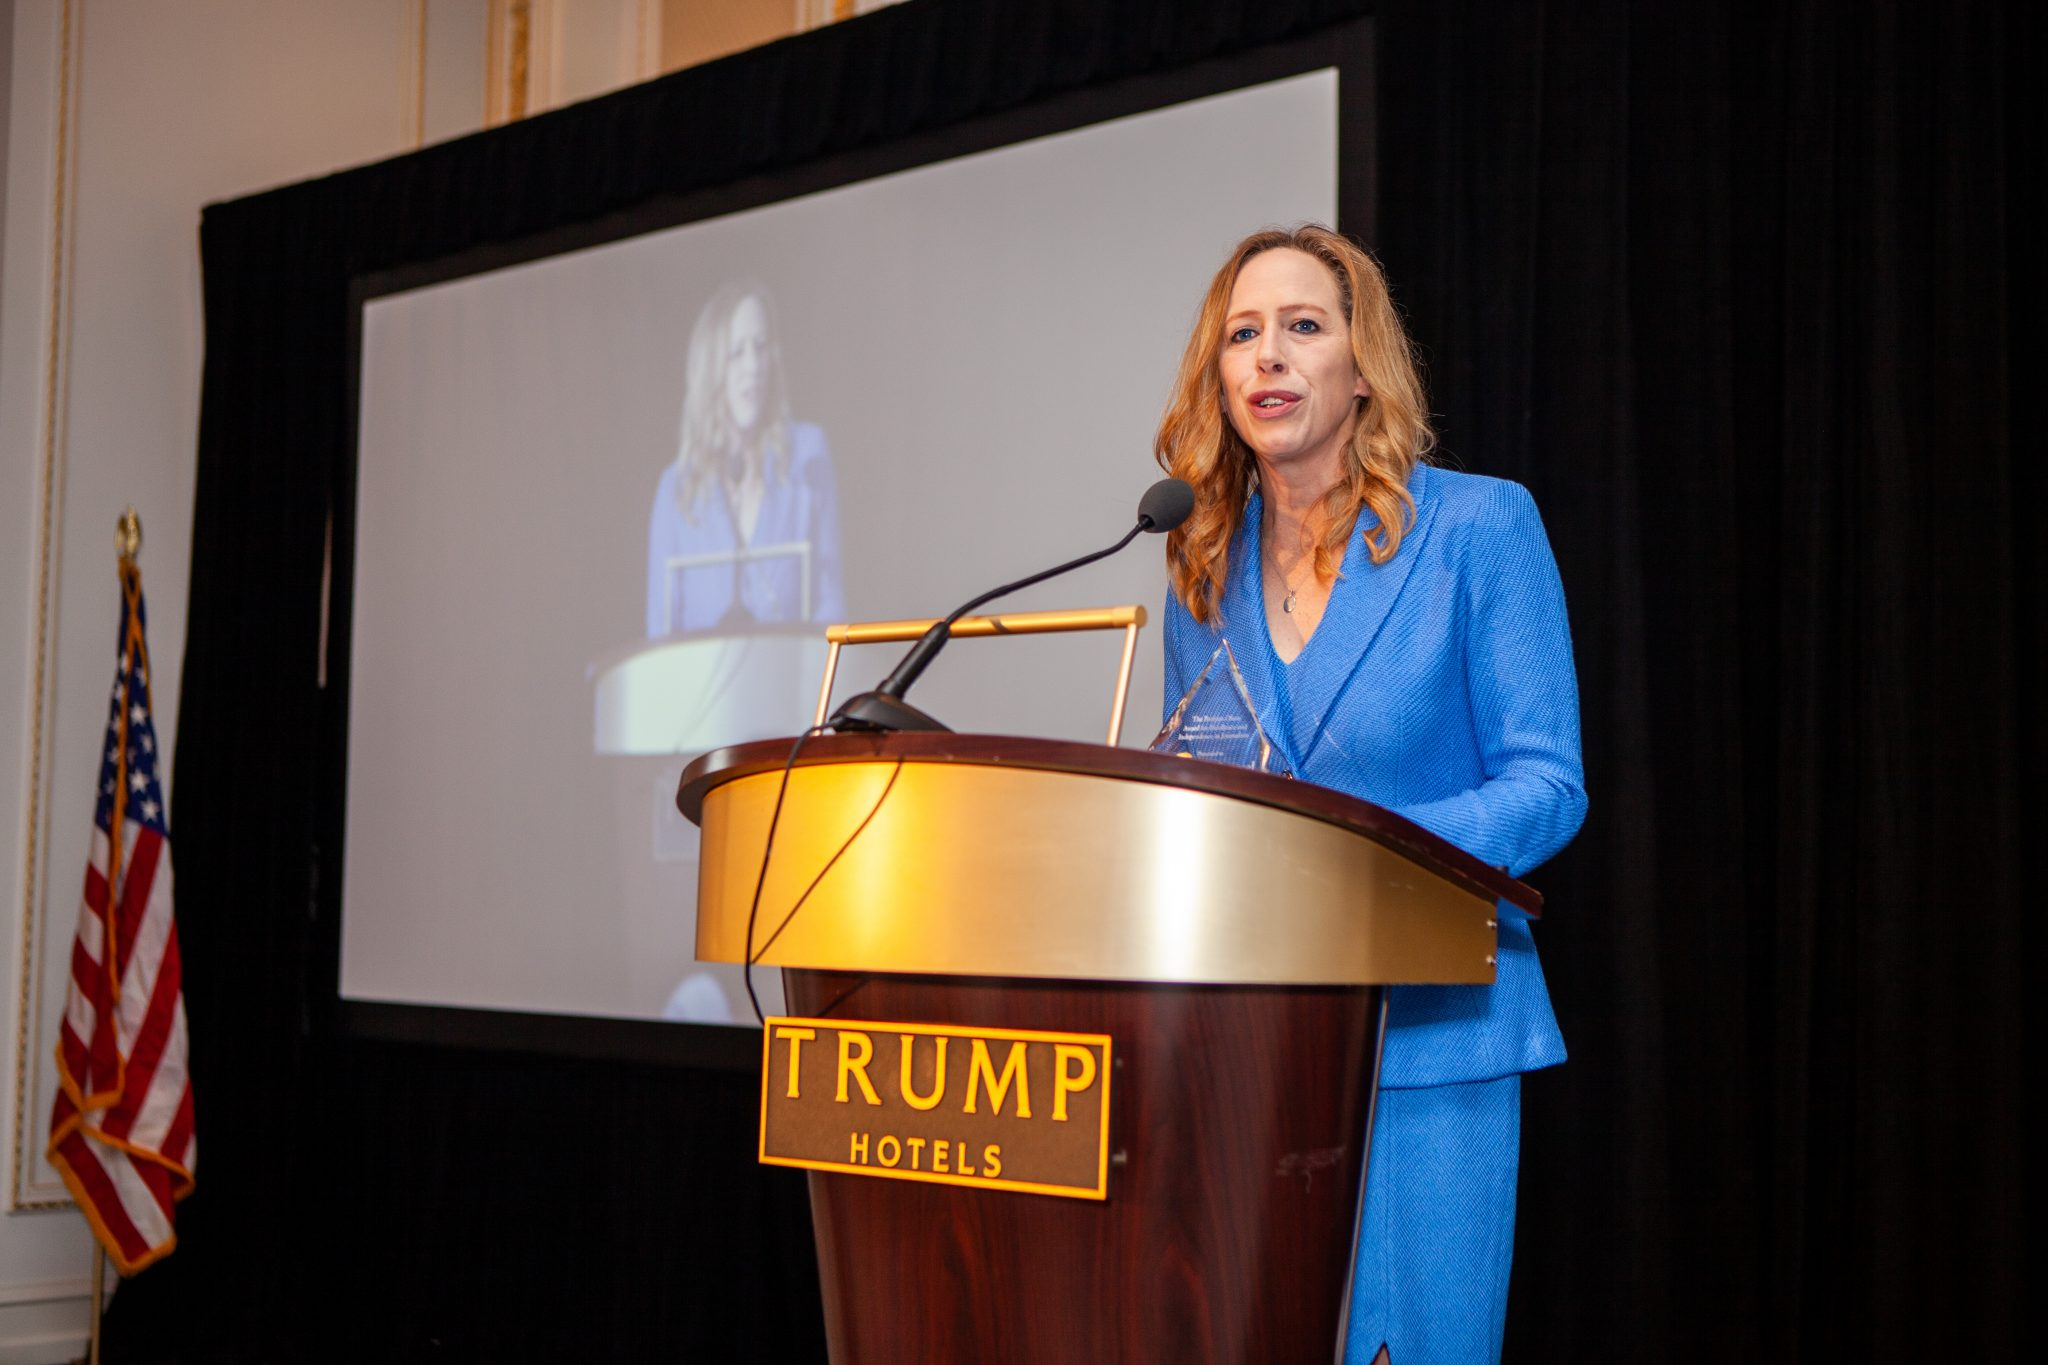 Resisting the Resistance: Kimberley Strassel Receives the Barbara Olson Award at The American Spectator's Annual Gala | The American Spectator | Politics Is Too Important To Be Taken Seriously.